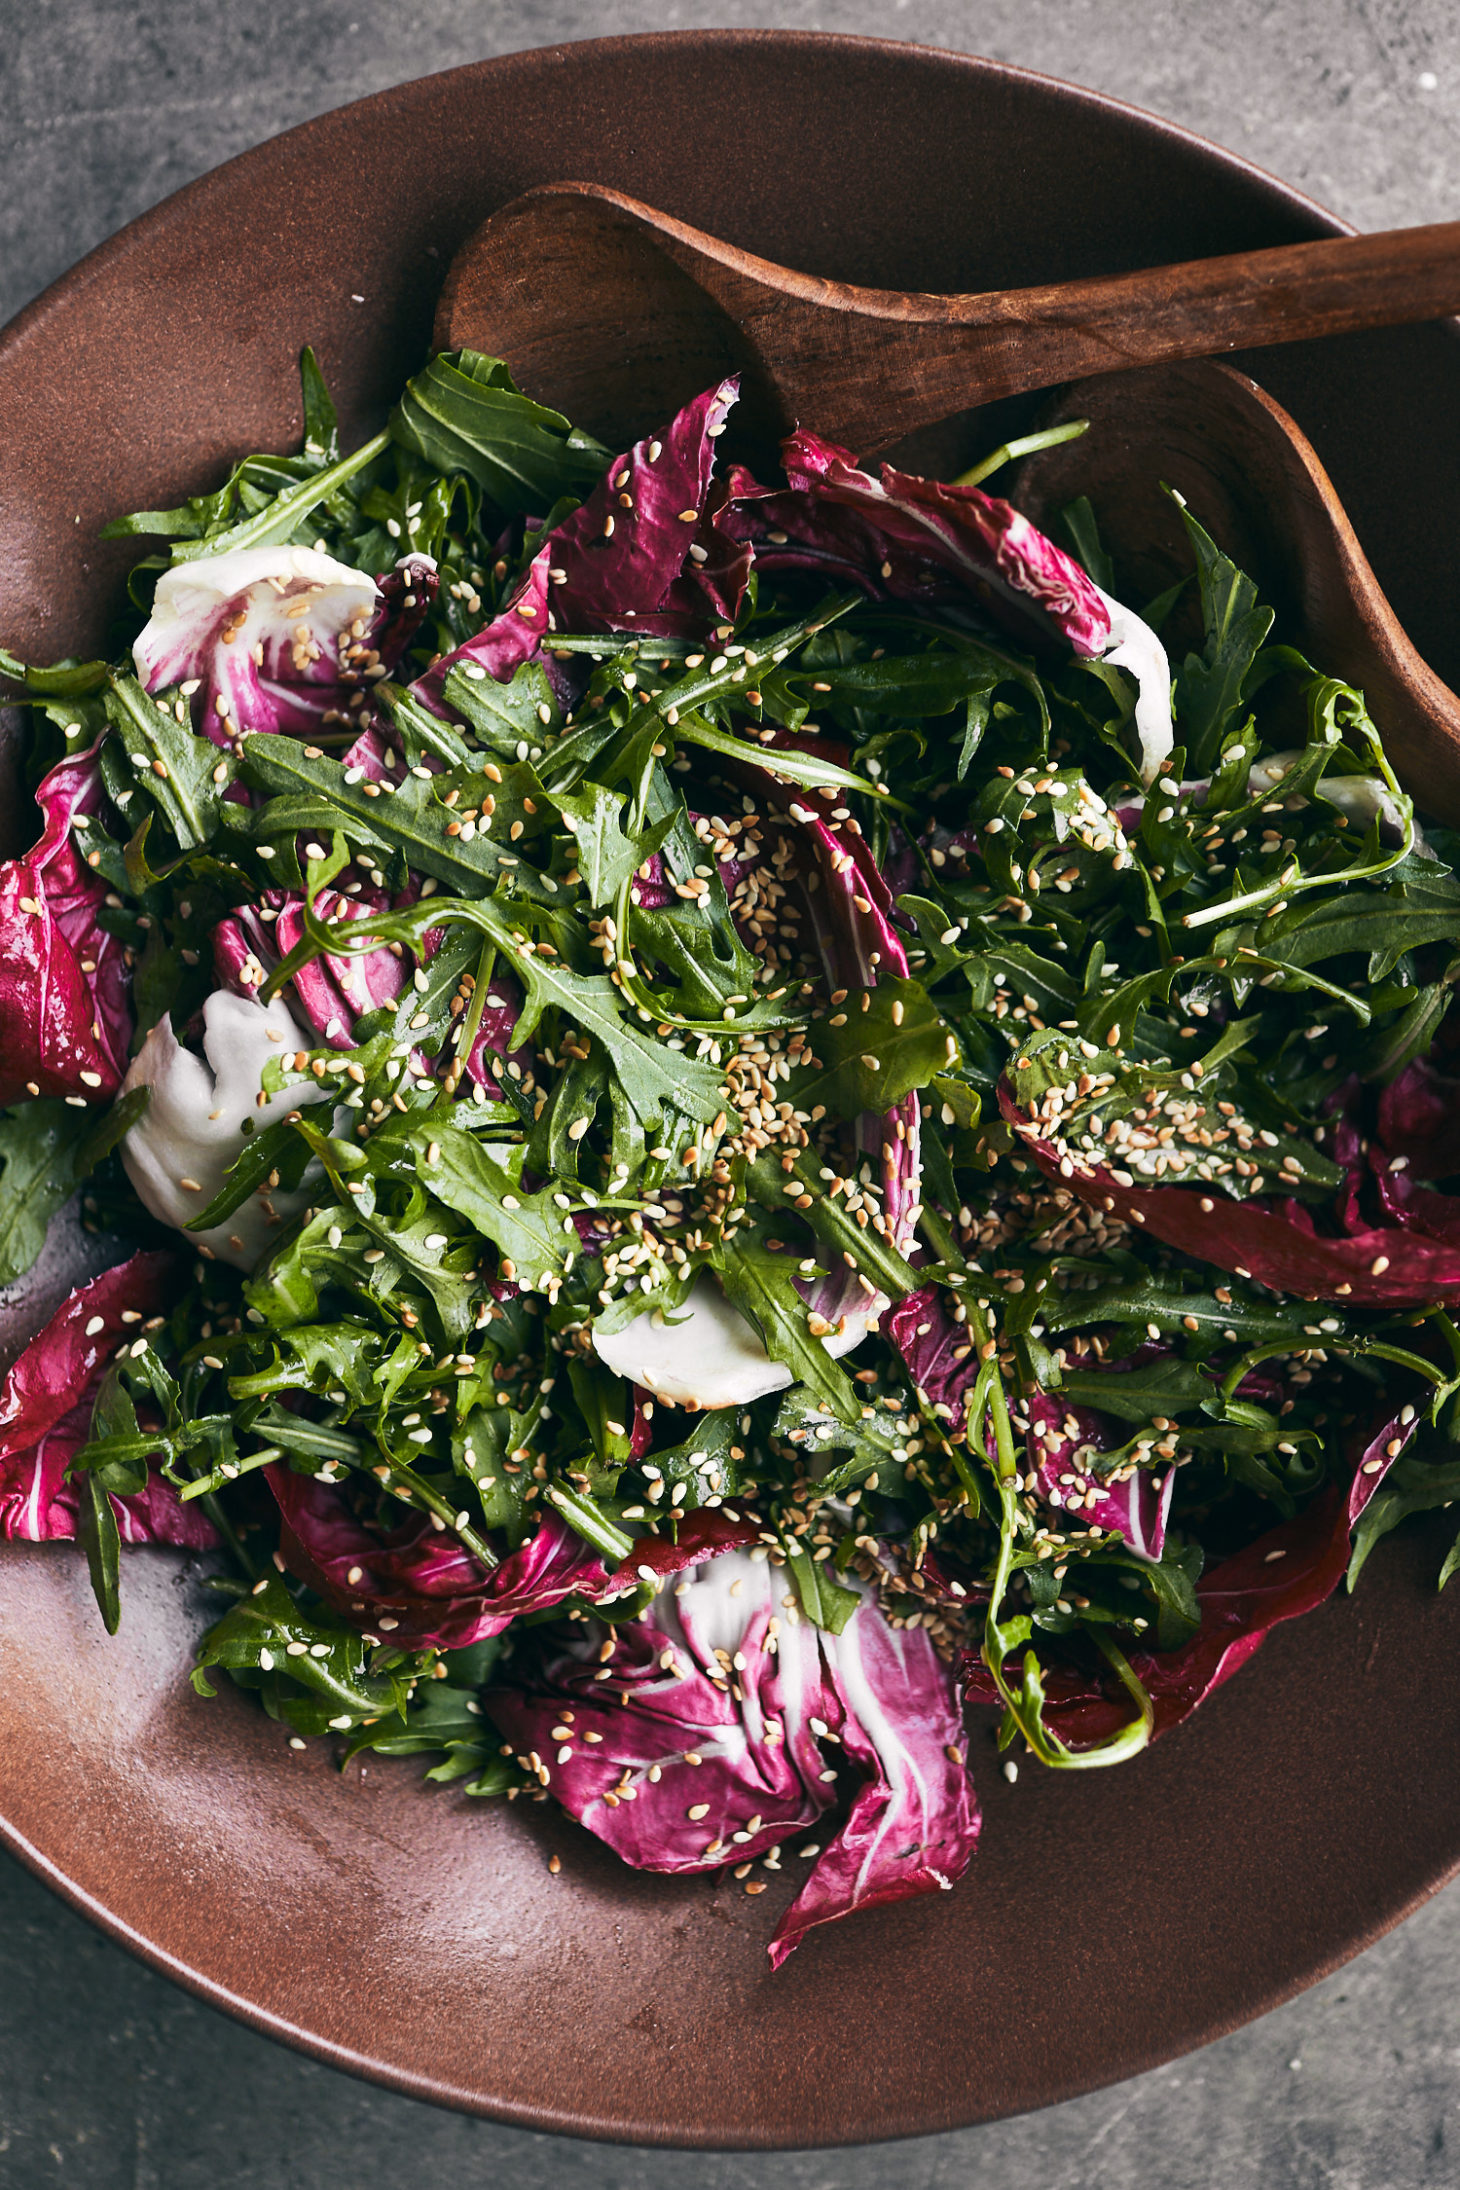 close-up of a brick colored bowl filled with arugula, radicchio, and sesame seeds.